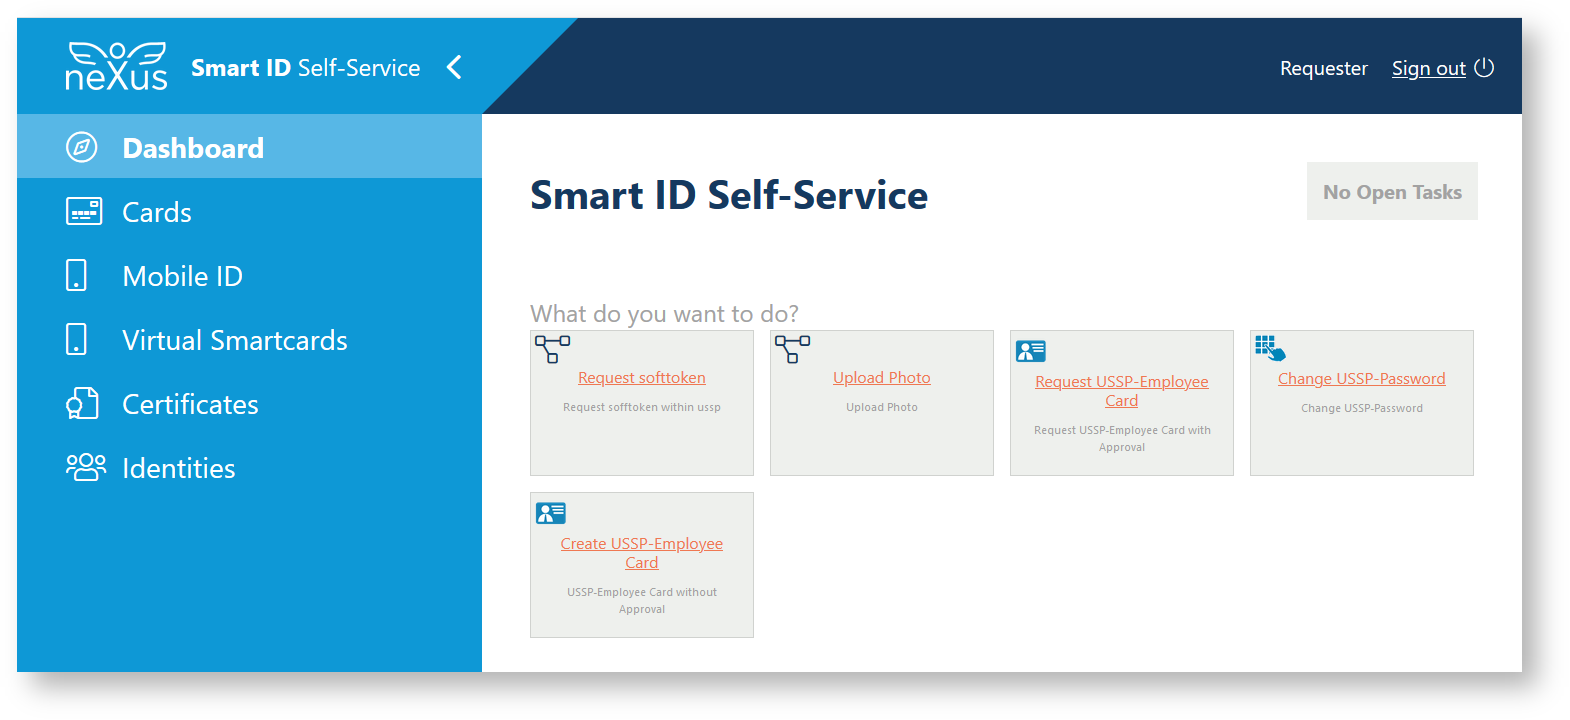 Smart ID Self-Service user interface